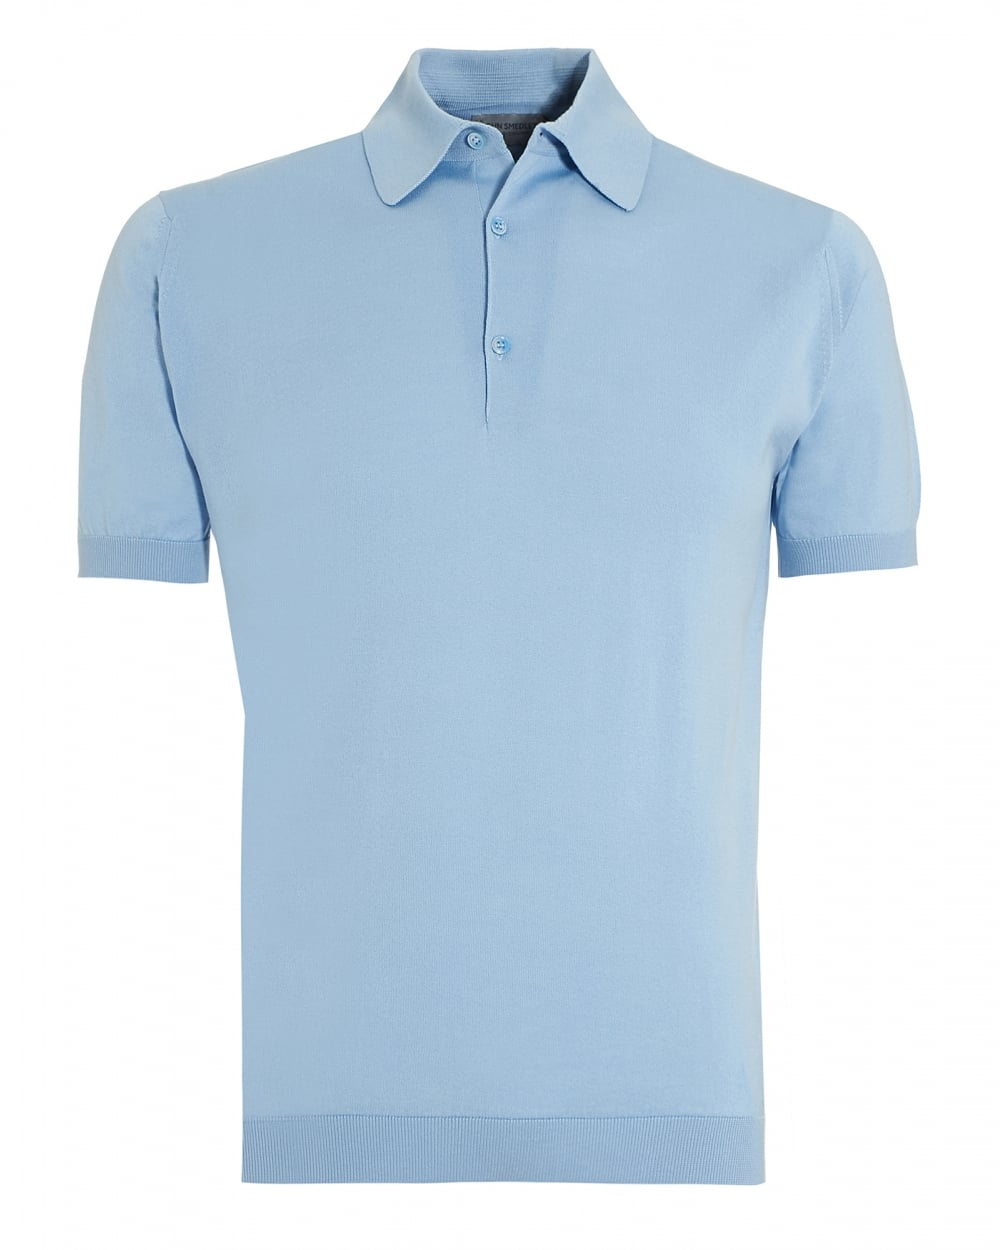 john smedley mens adrian hayward blue sea island cotton